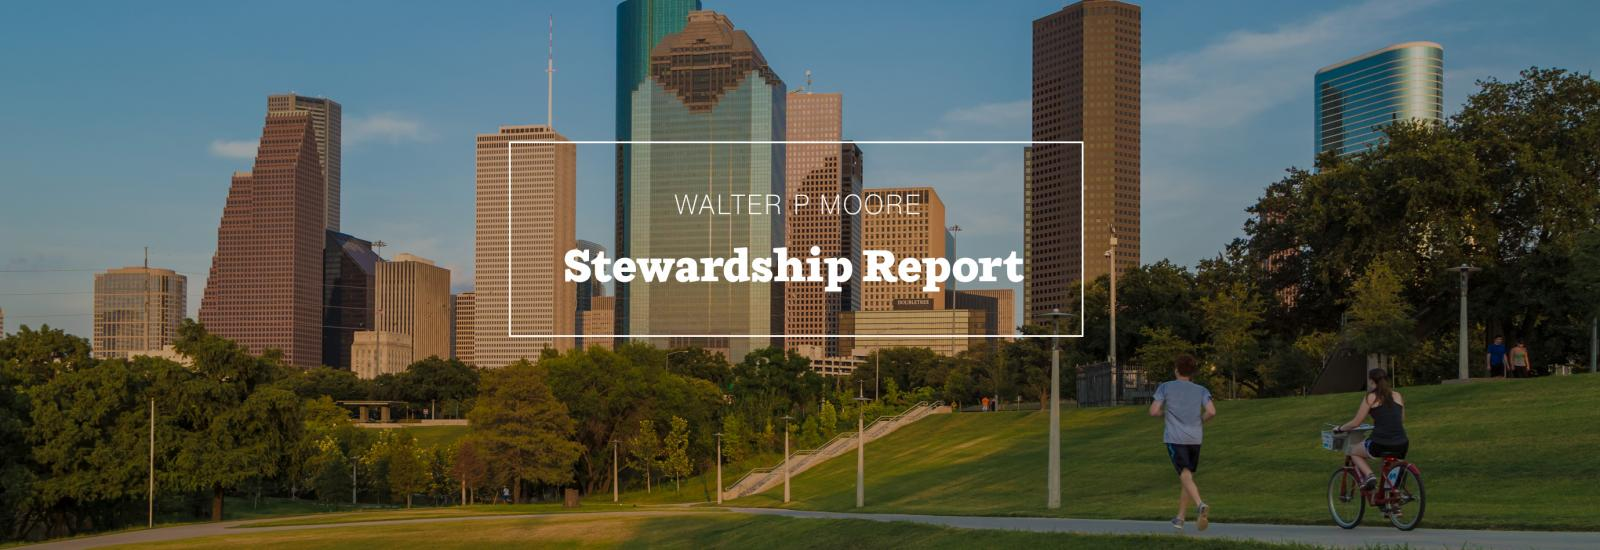 Stewardship Report Feature